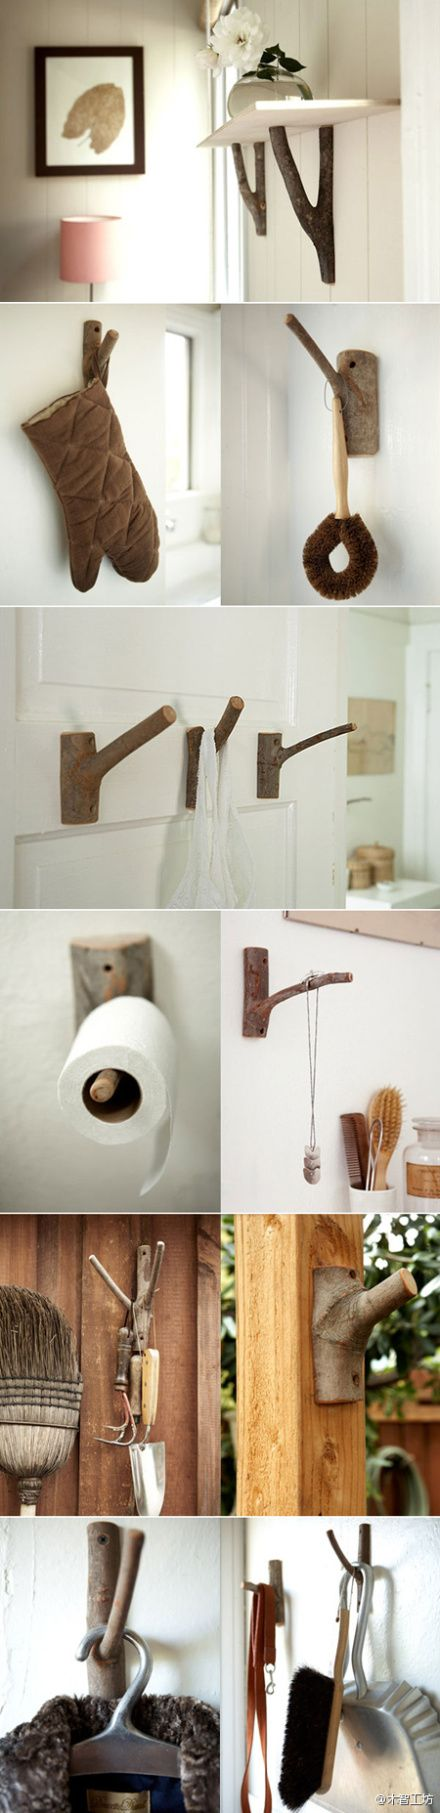 Tree branches for crafts - Upcycle Cut Down Tree Limbs To Make These Great Looking Coat Hooks Shelf Supports